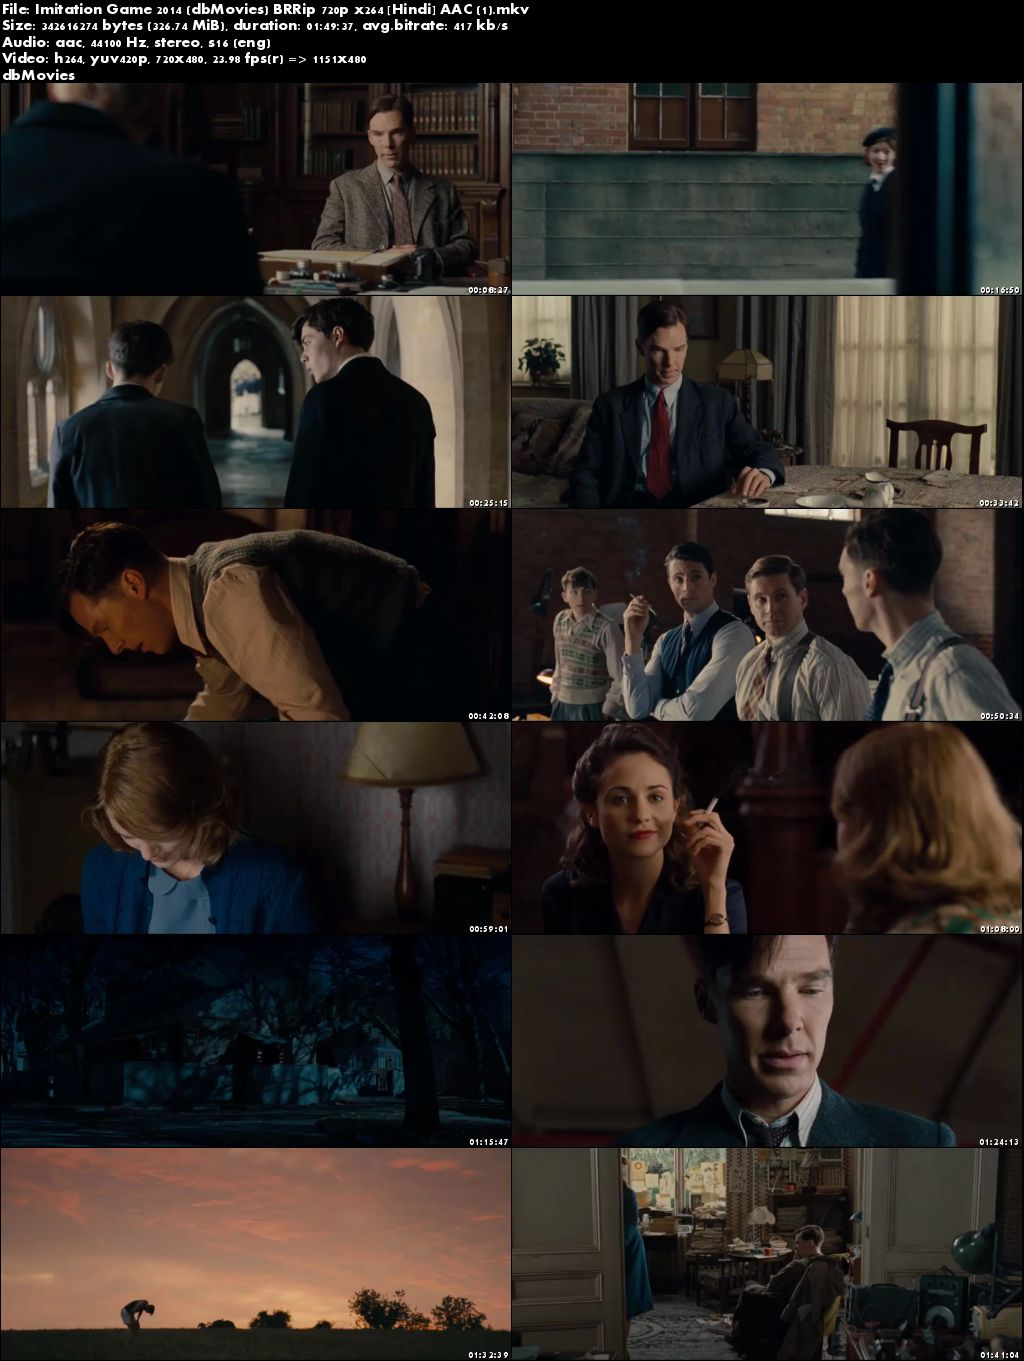 Screen Shots The Imitation Game 2014 Full Movie Download Hindi Dubbed 300Mb